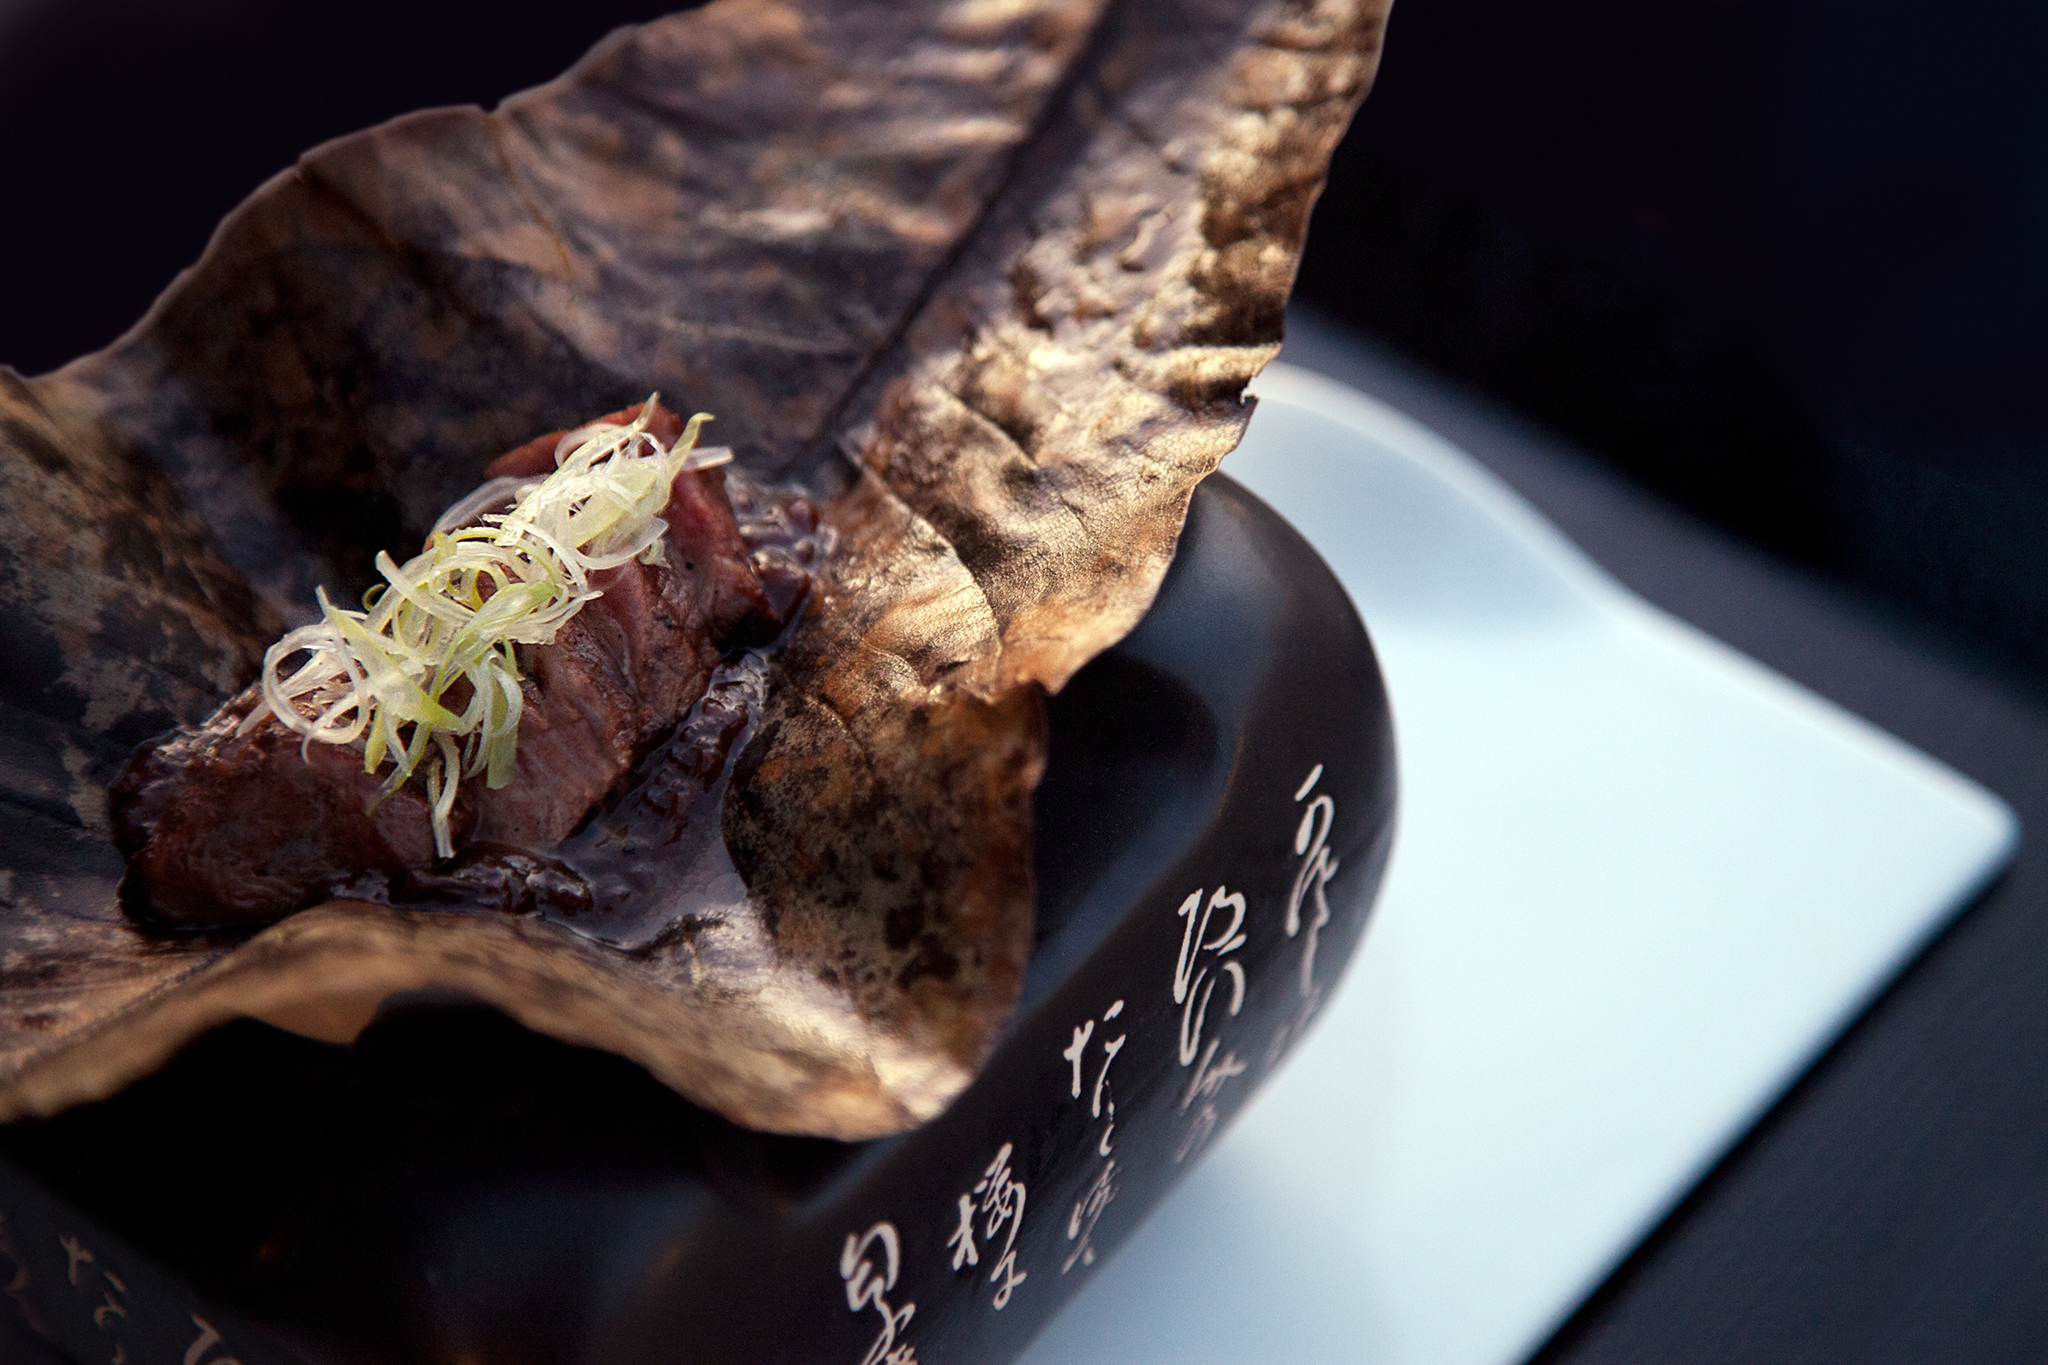 Australian wagyu on houba (magnolia leaf) with red miso sauce at n/naka